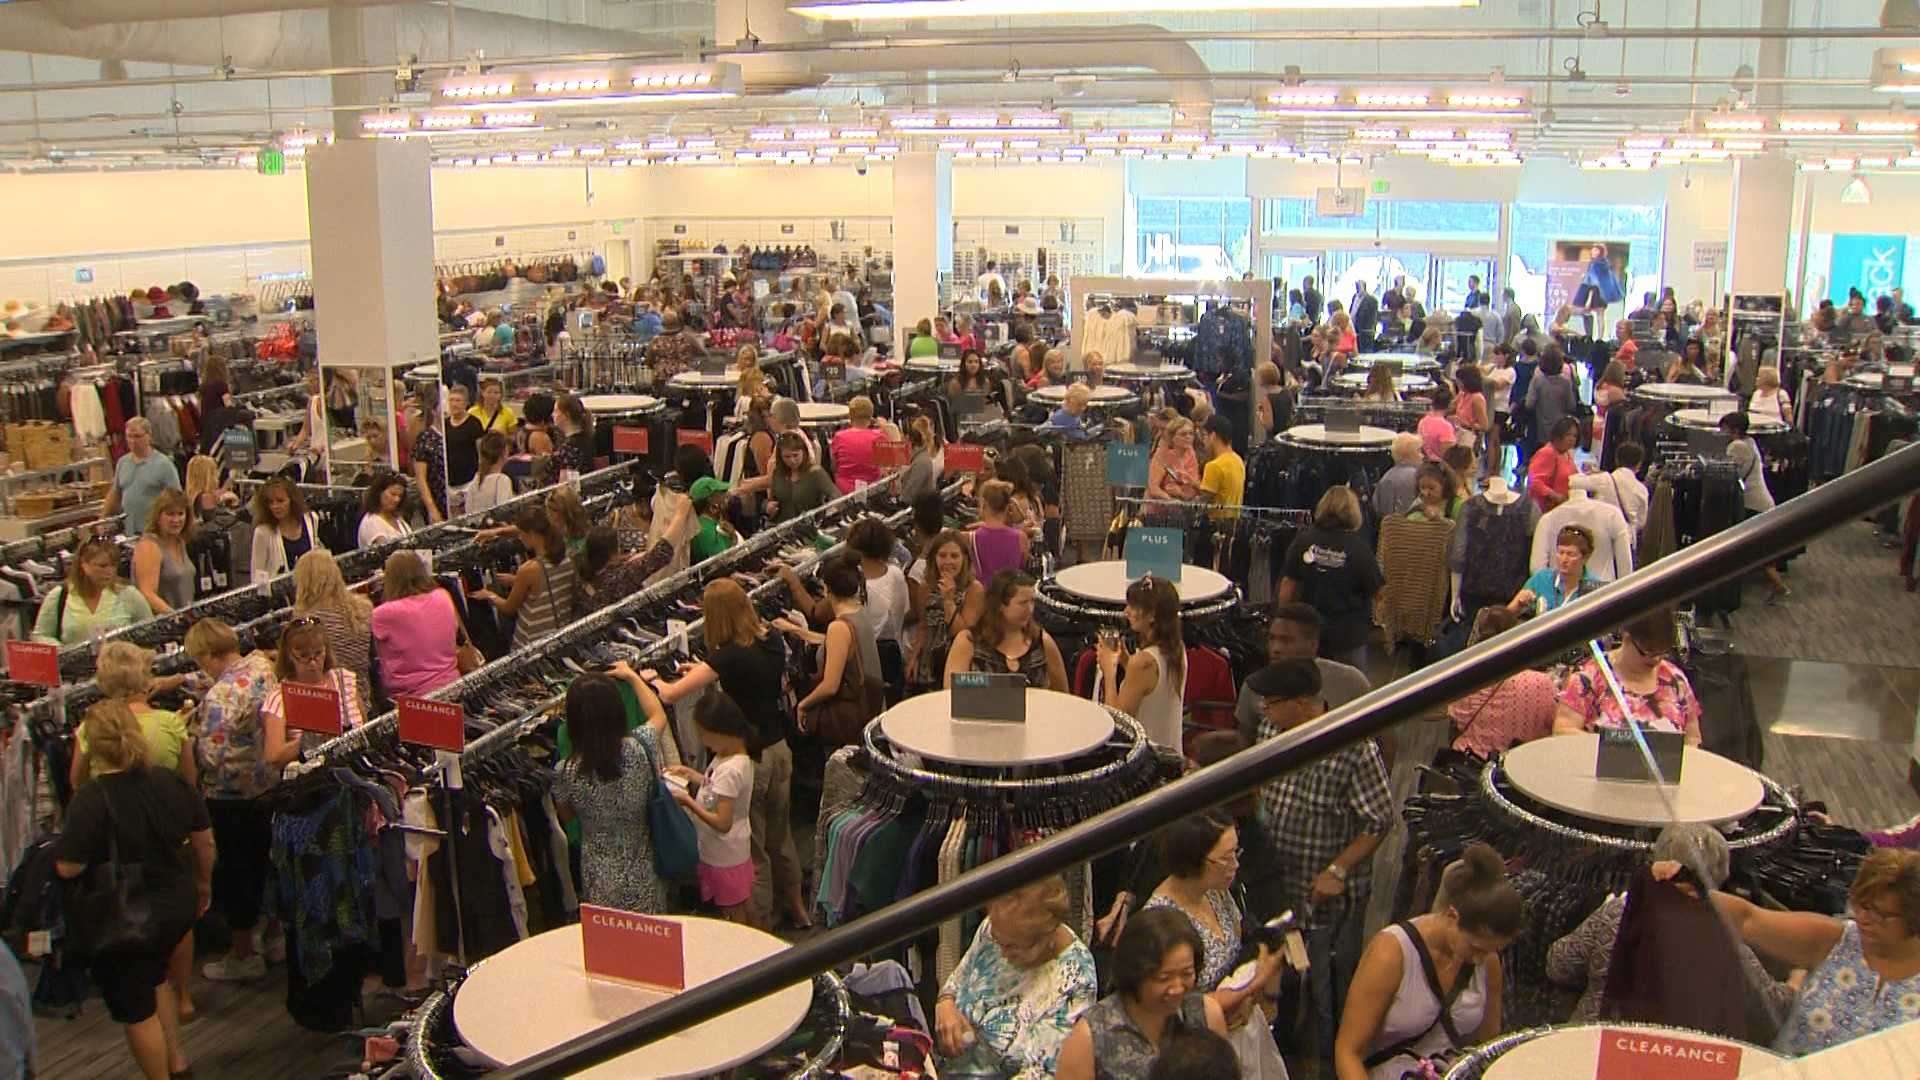 Shoppers browse the merchandise at Nordstrom Rack.